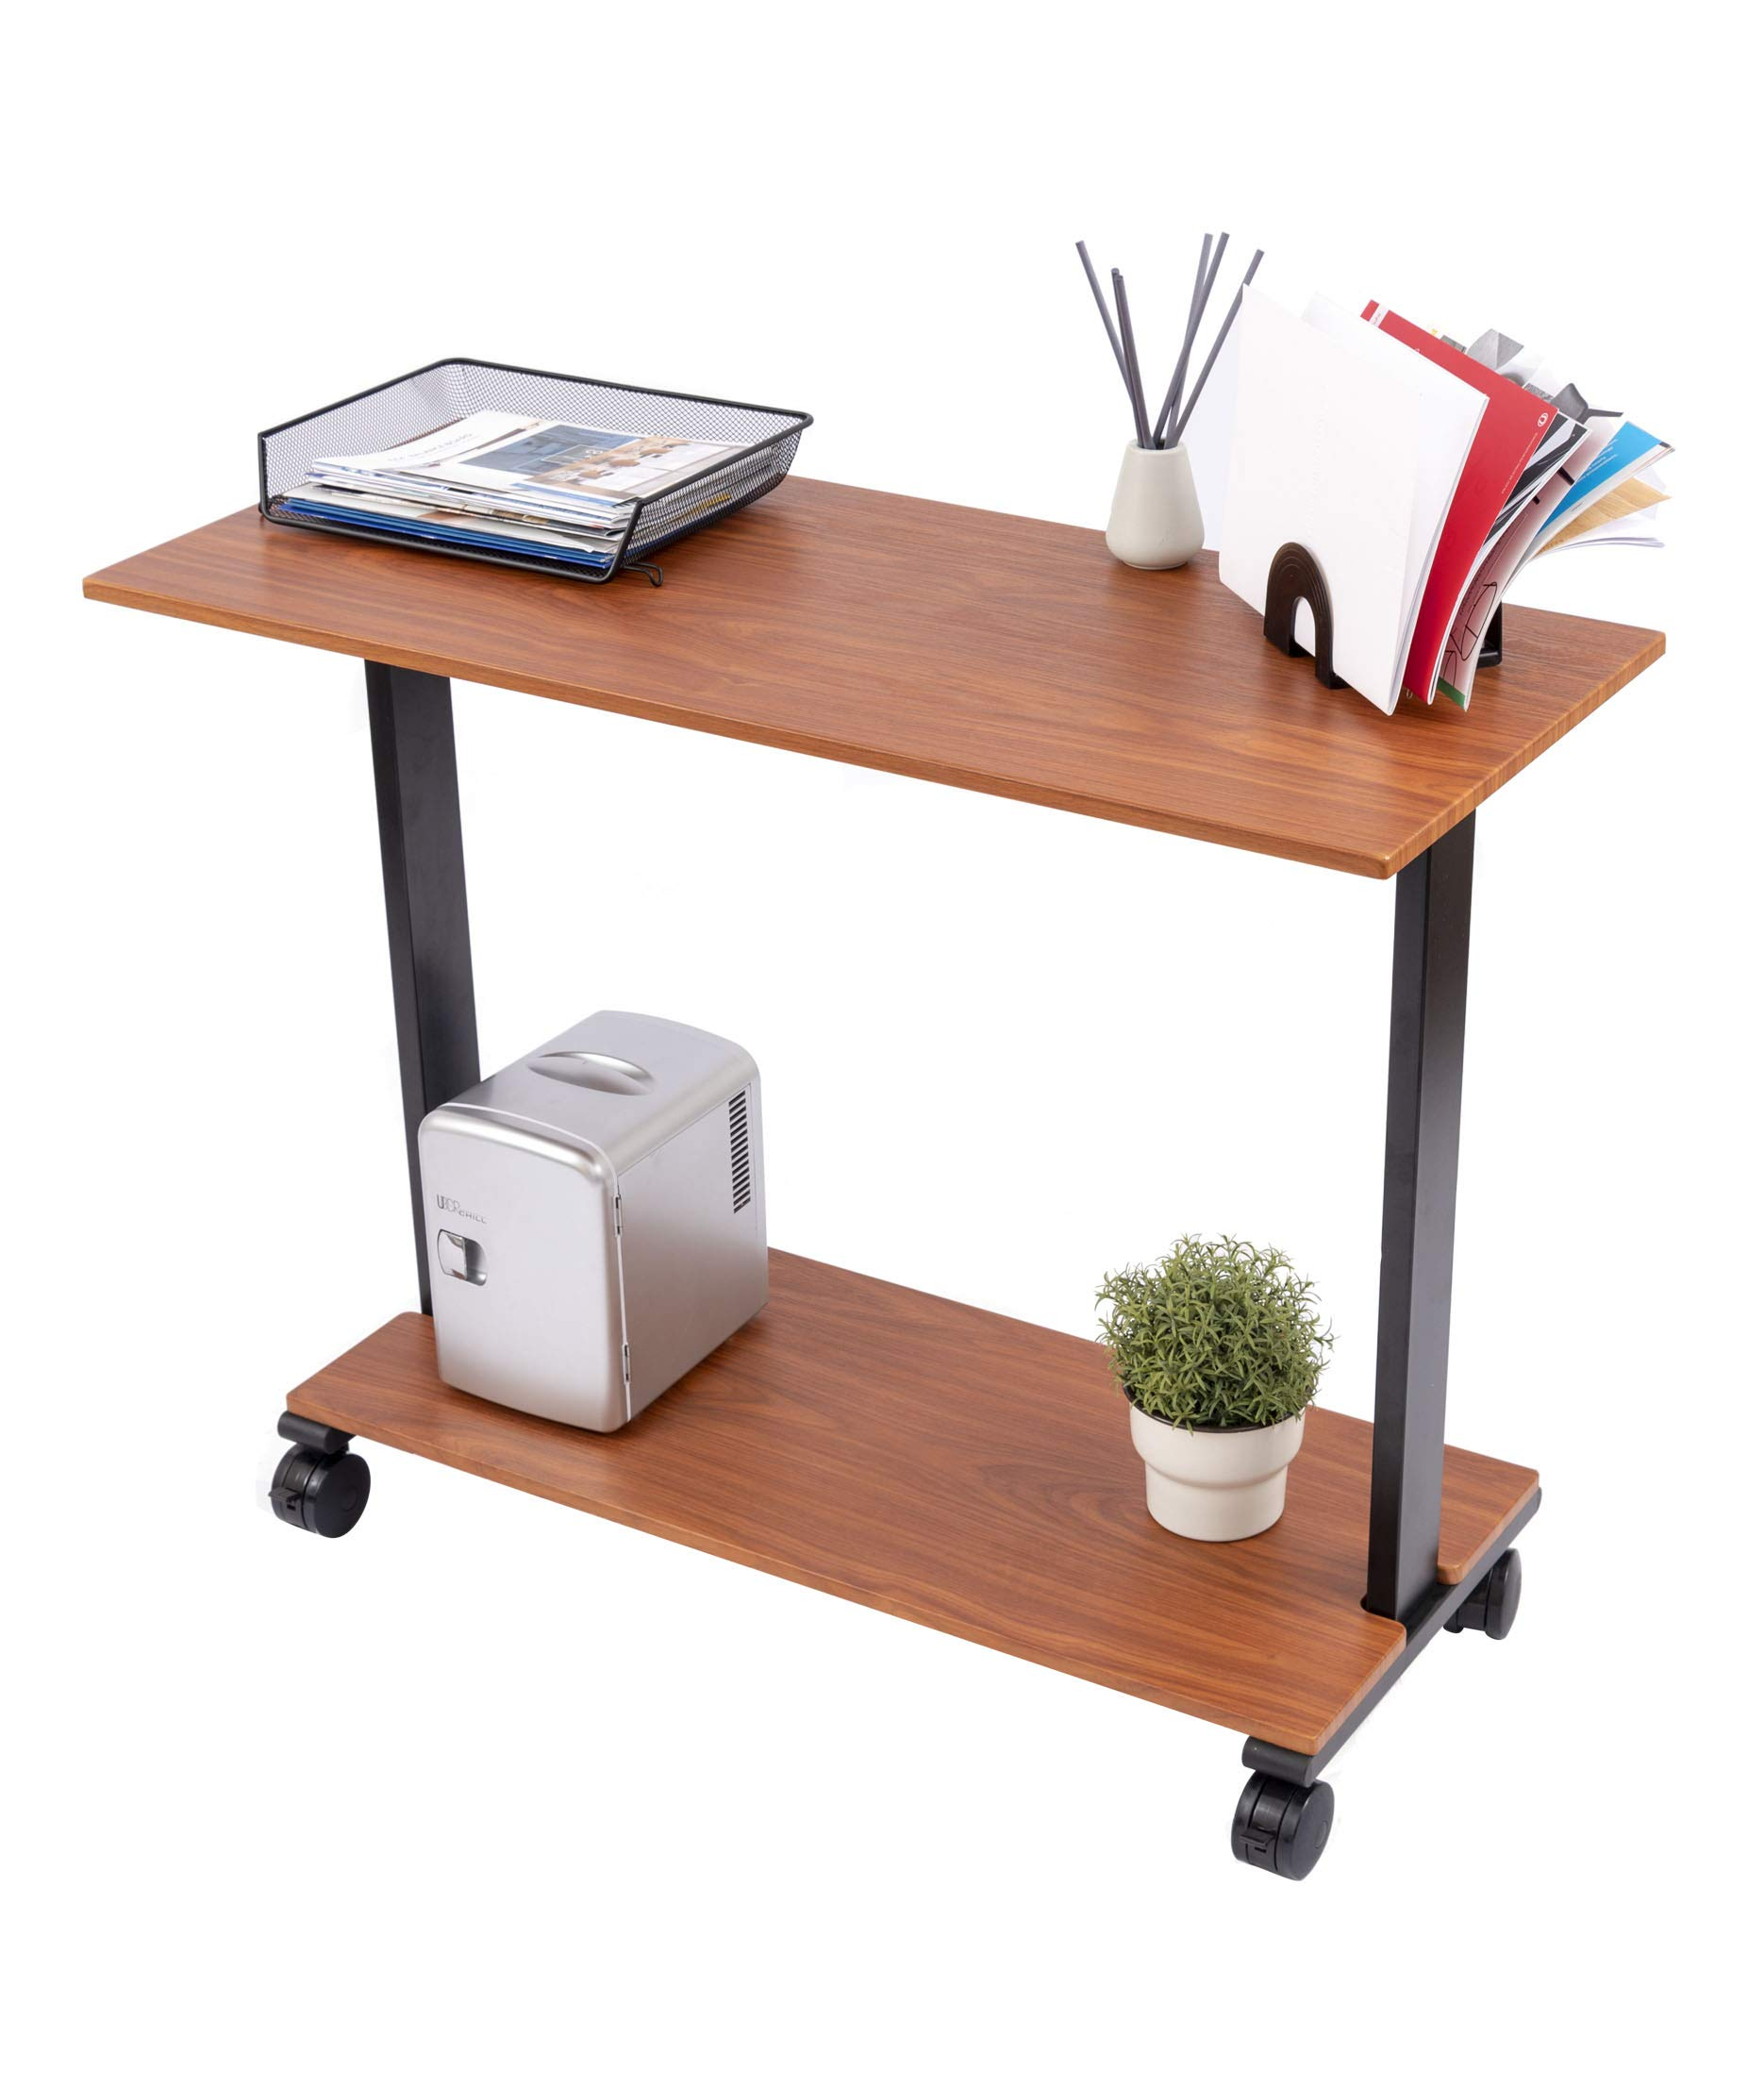 Stand Up Desk Store Two Level Rolling Printer Stand/Desk Shelf   Increase Usable Desk Space While Making Room for a Printer and Supplies (42'', Teak)